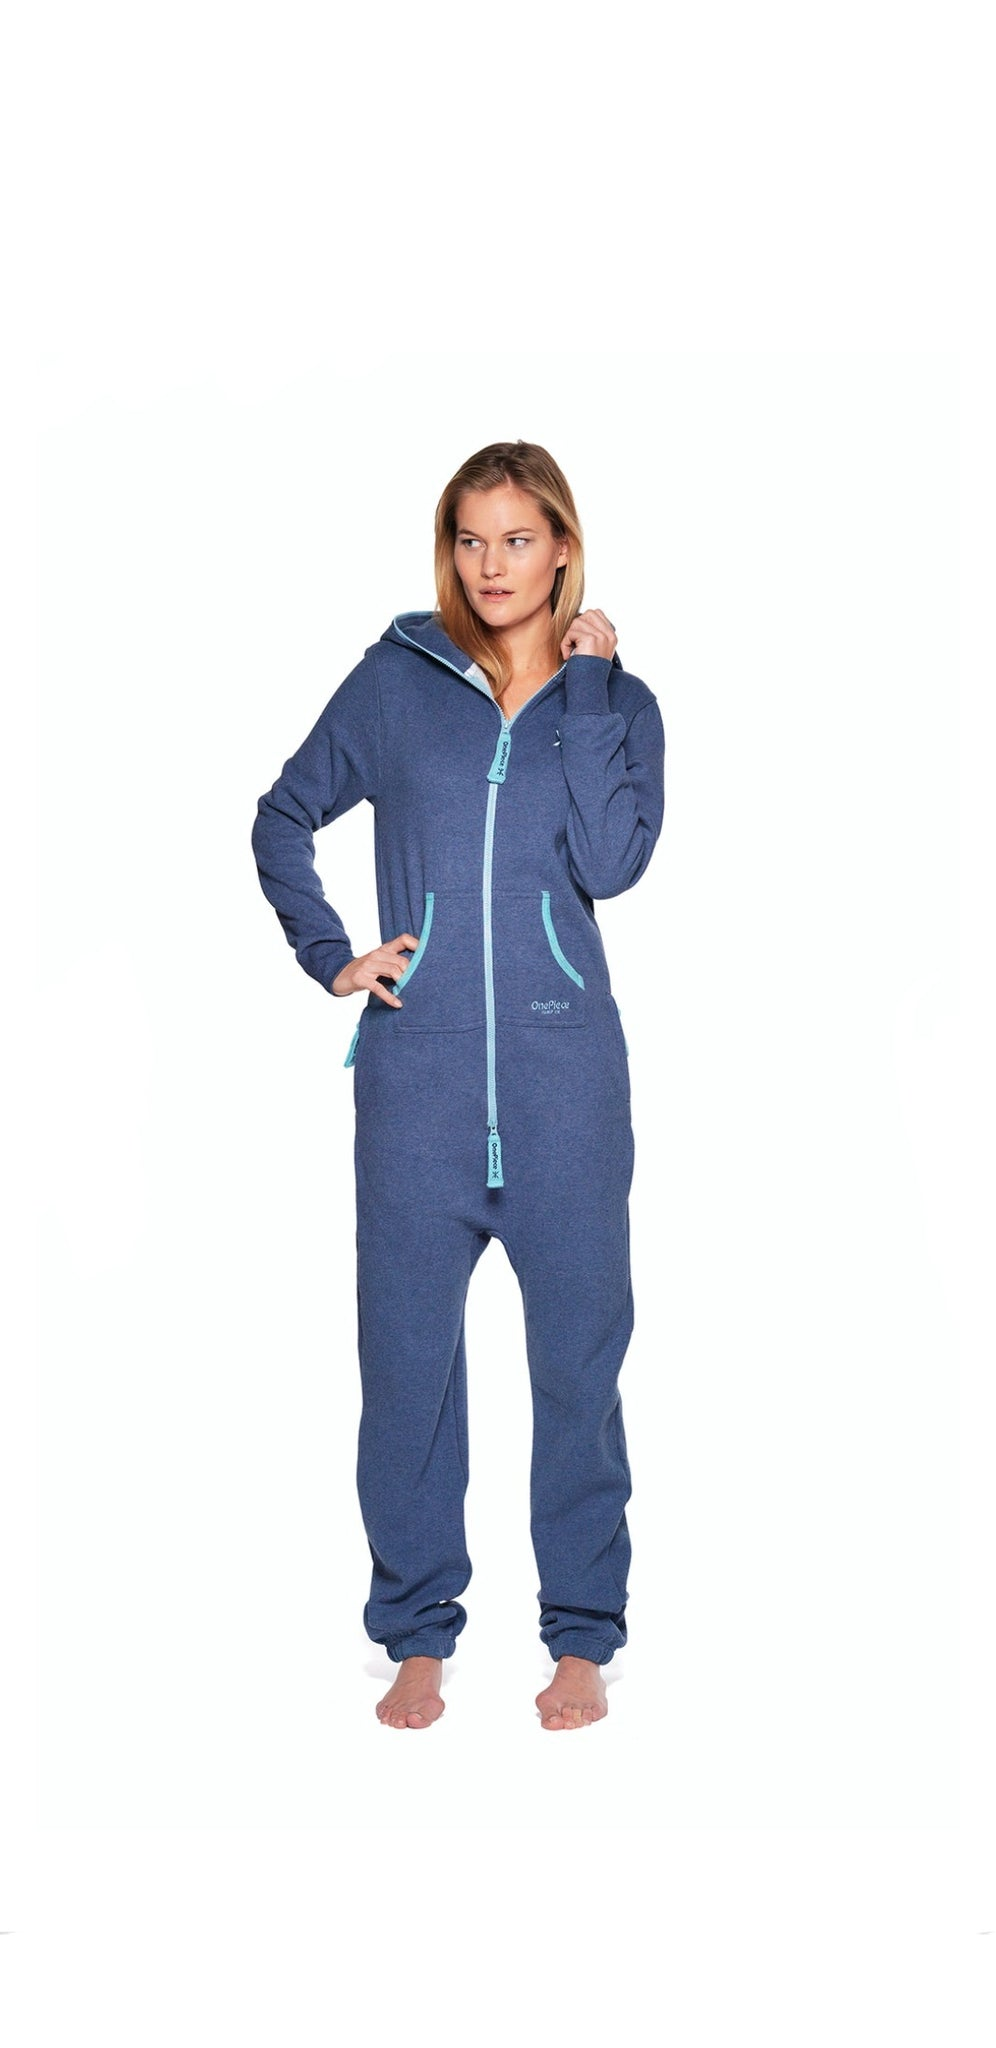 Onepiece Adult Onesie 2.0 in Dusty Blue